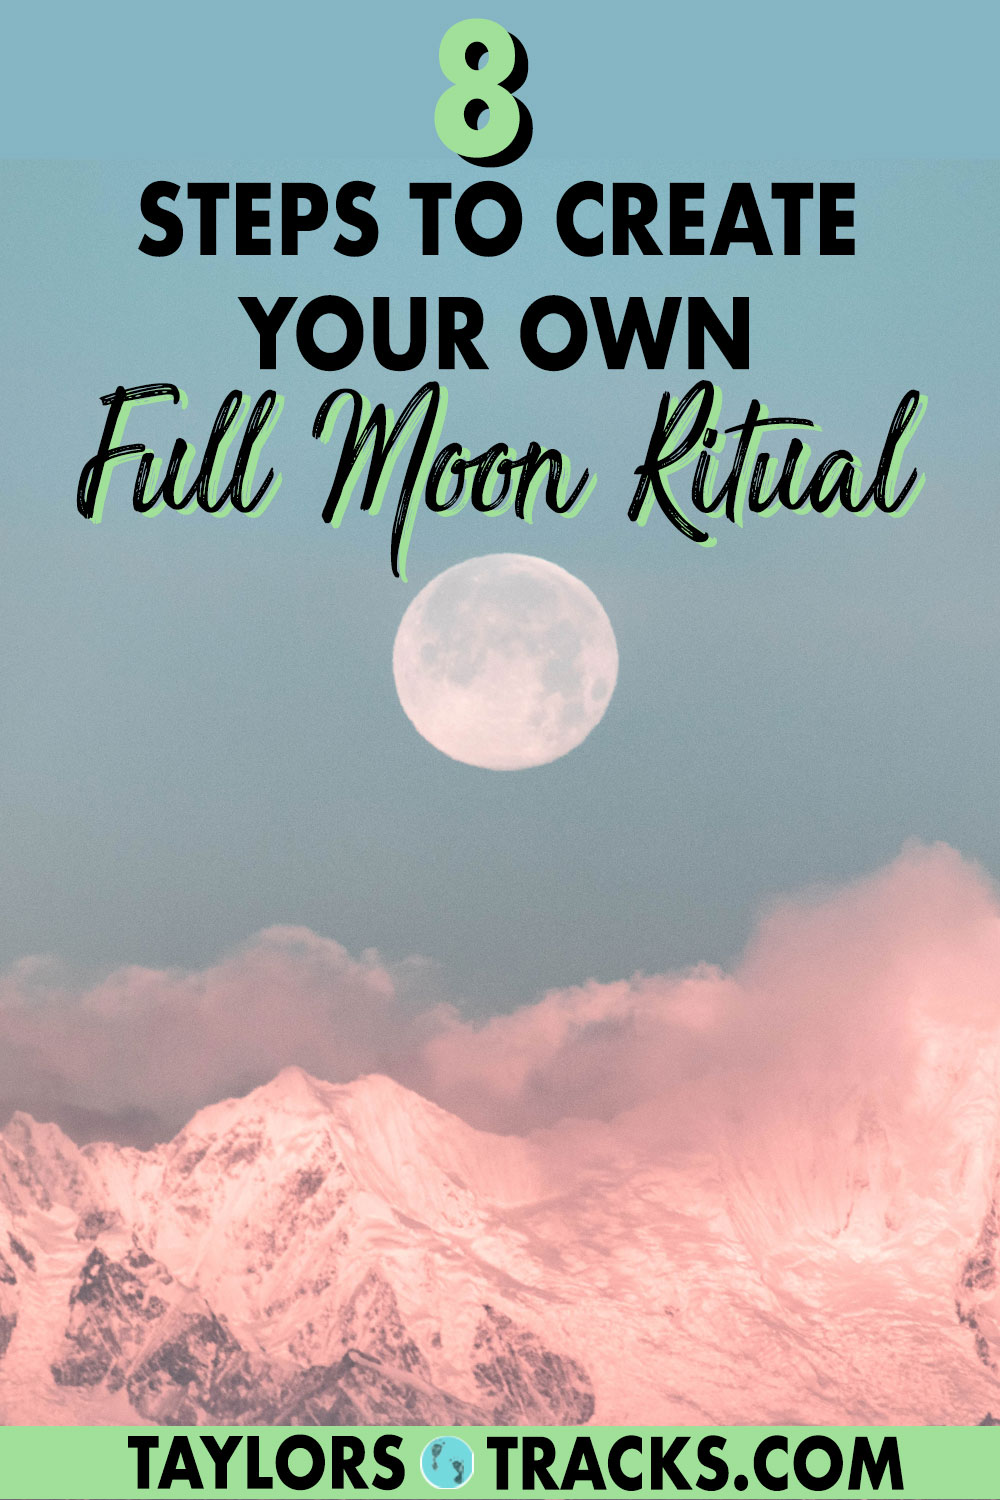 The full moon is a powerful time when energy is high and is also the perfect time to learn to let go, release what is no longer serving you and manifest with the moon to call in what you want. Click to find a simple full moon ritual that is perfect for letting go!